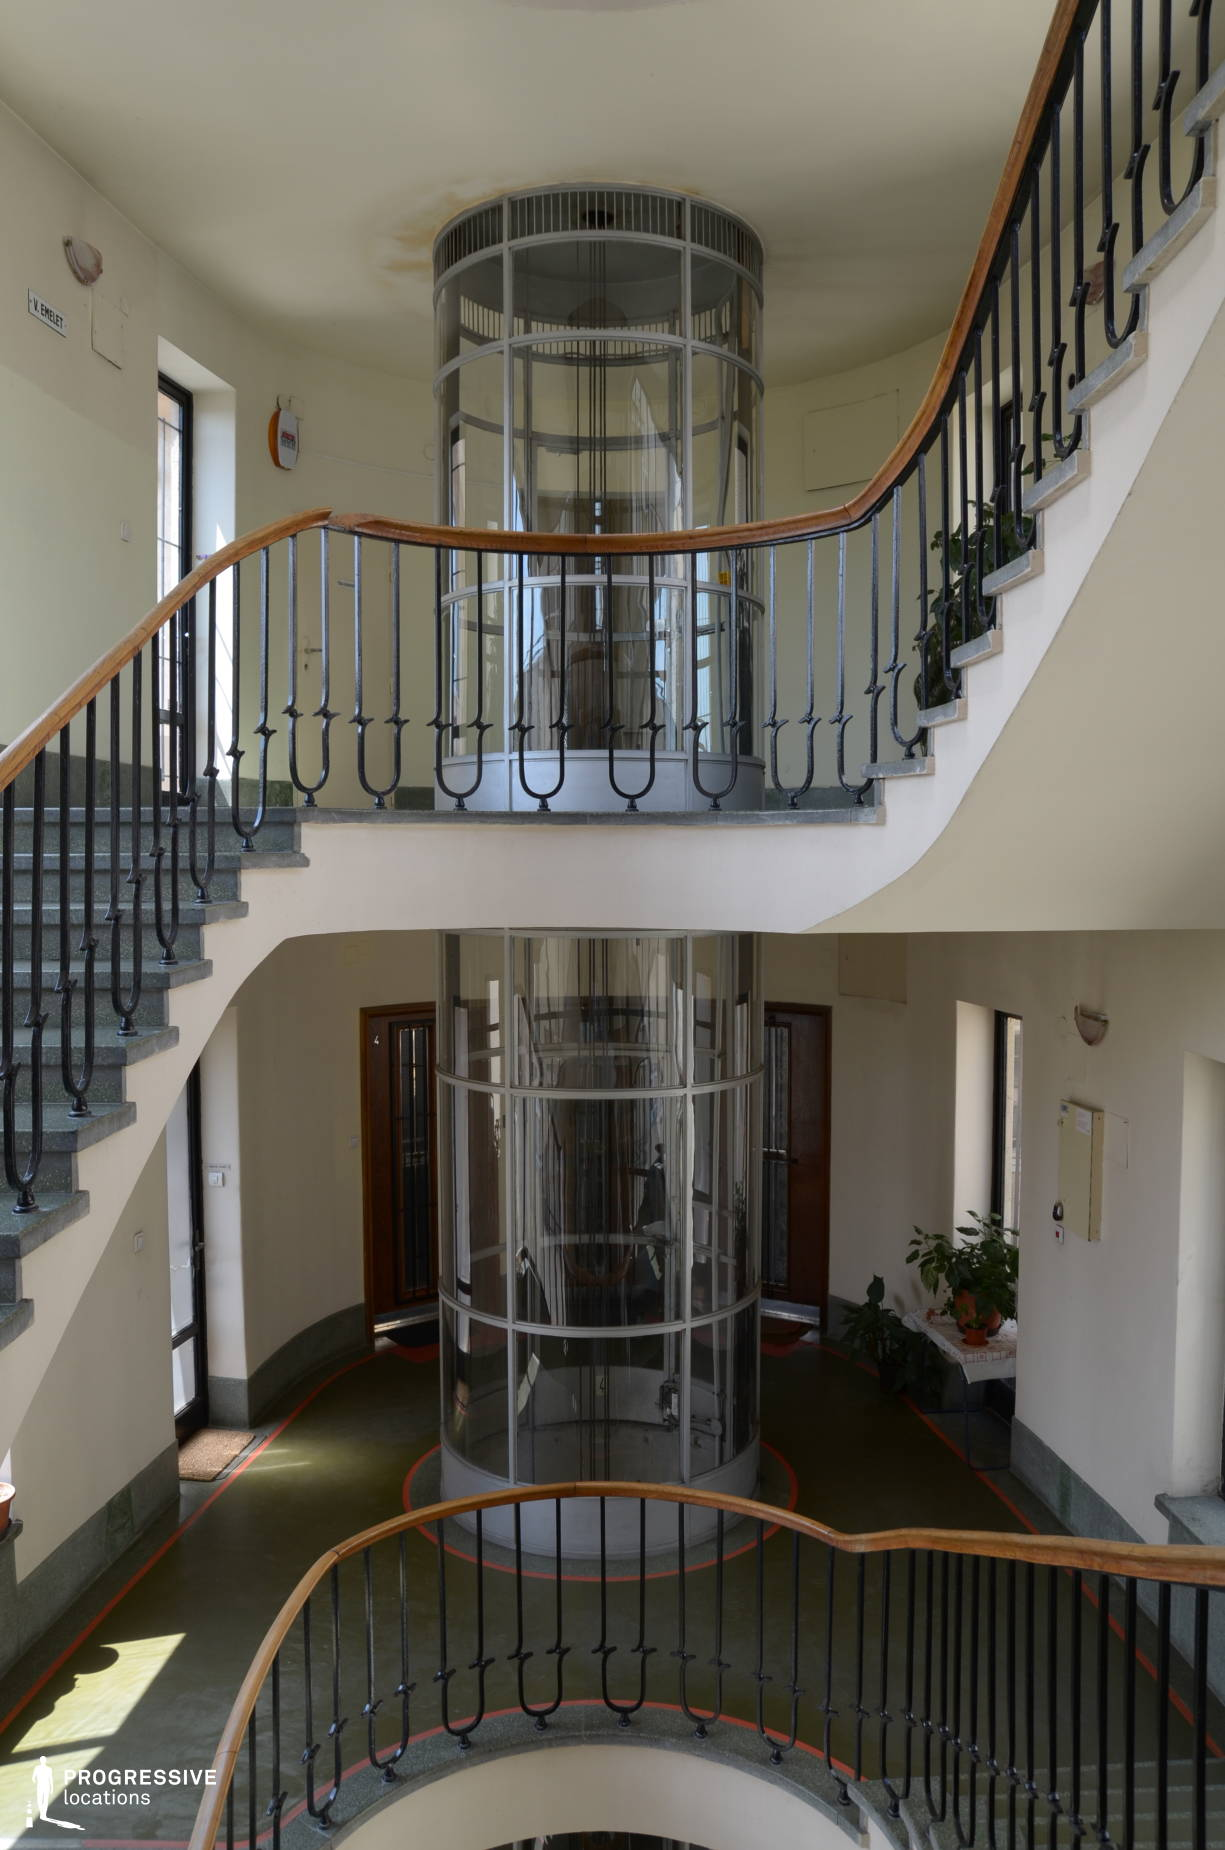 Locations in Budapest: Bauhaus Staircase %26 Elevator